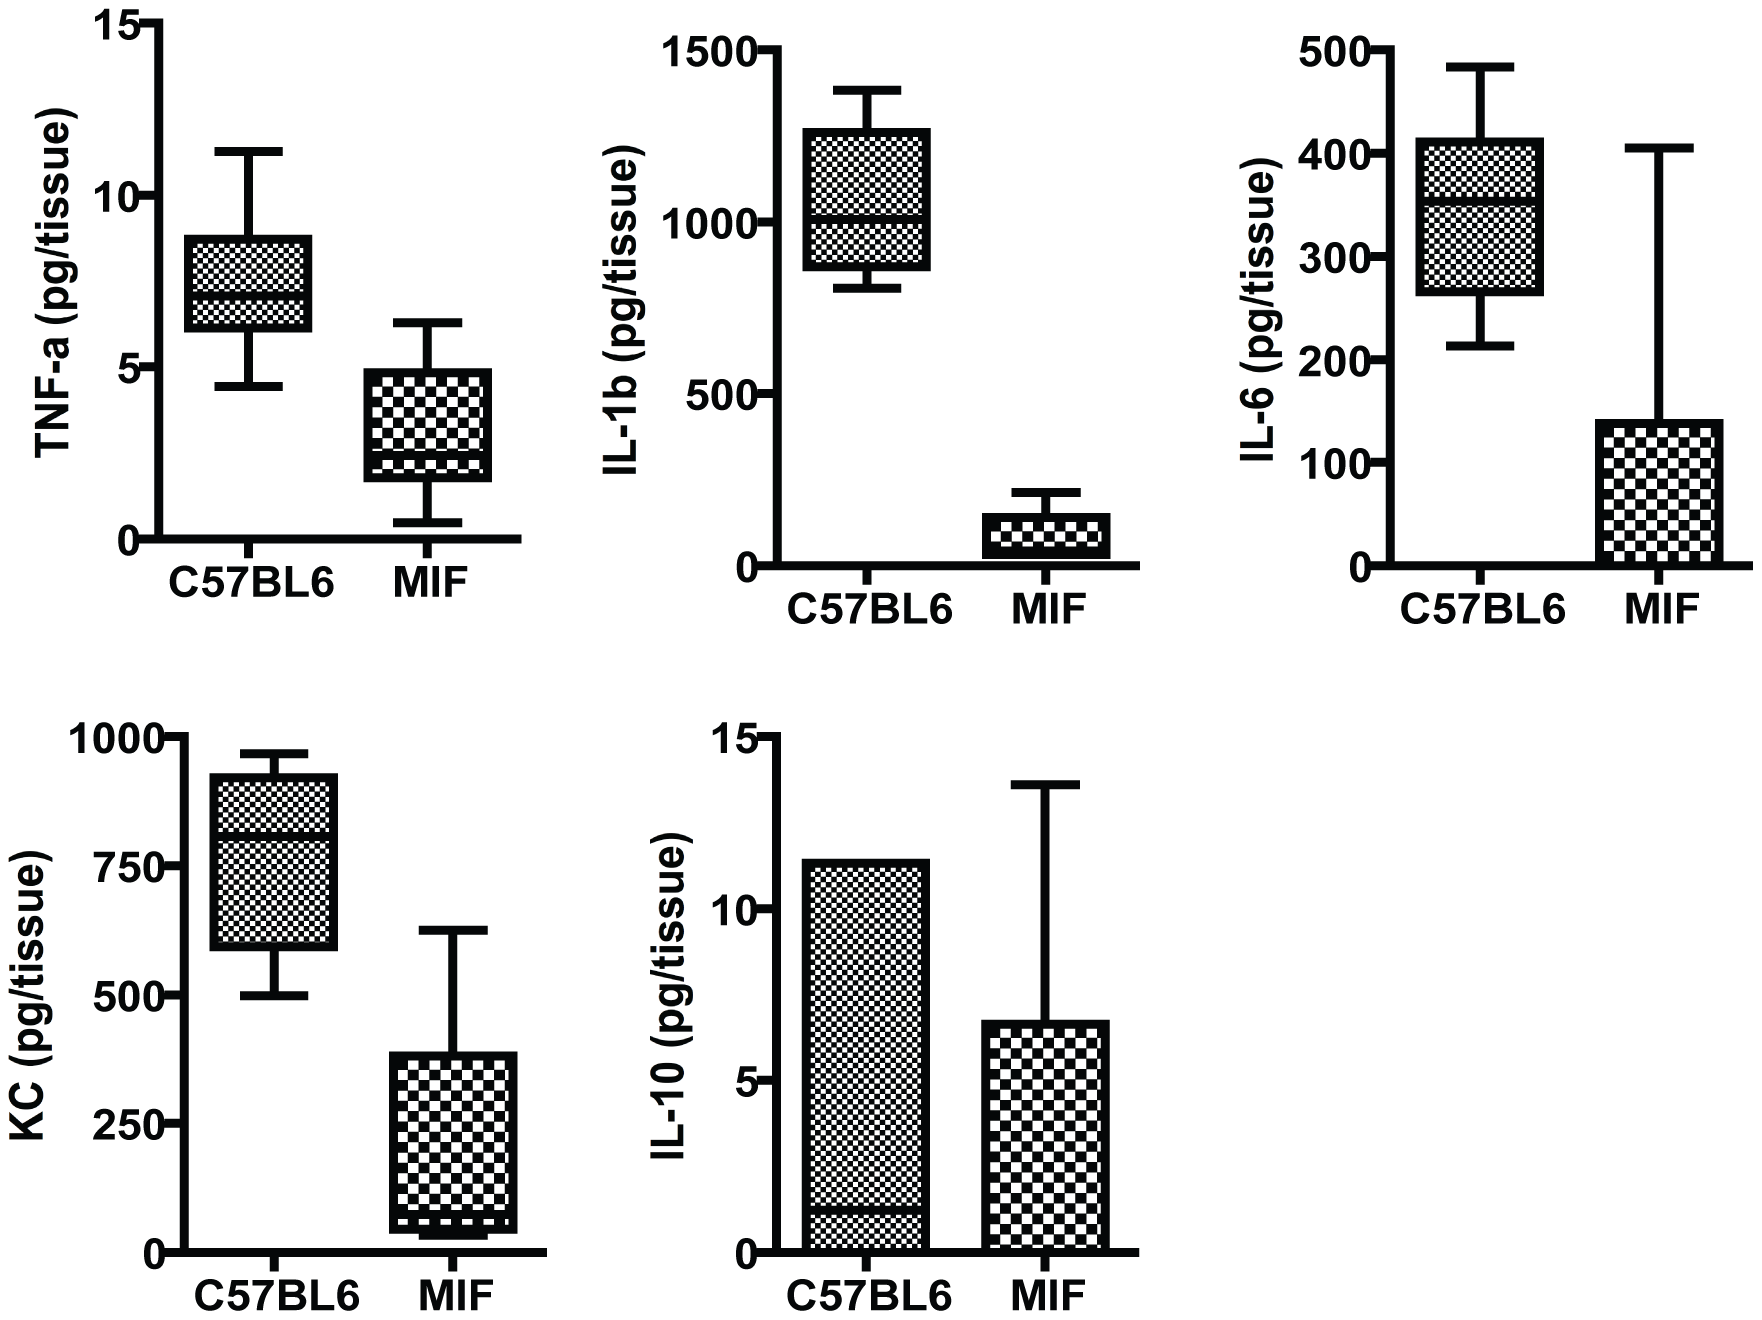 Inflammatory responses in the corneas of MIF KO and C57Bl6 mice infected with <i>P. aeruginosa</i> strain 6294.